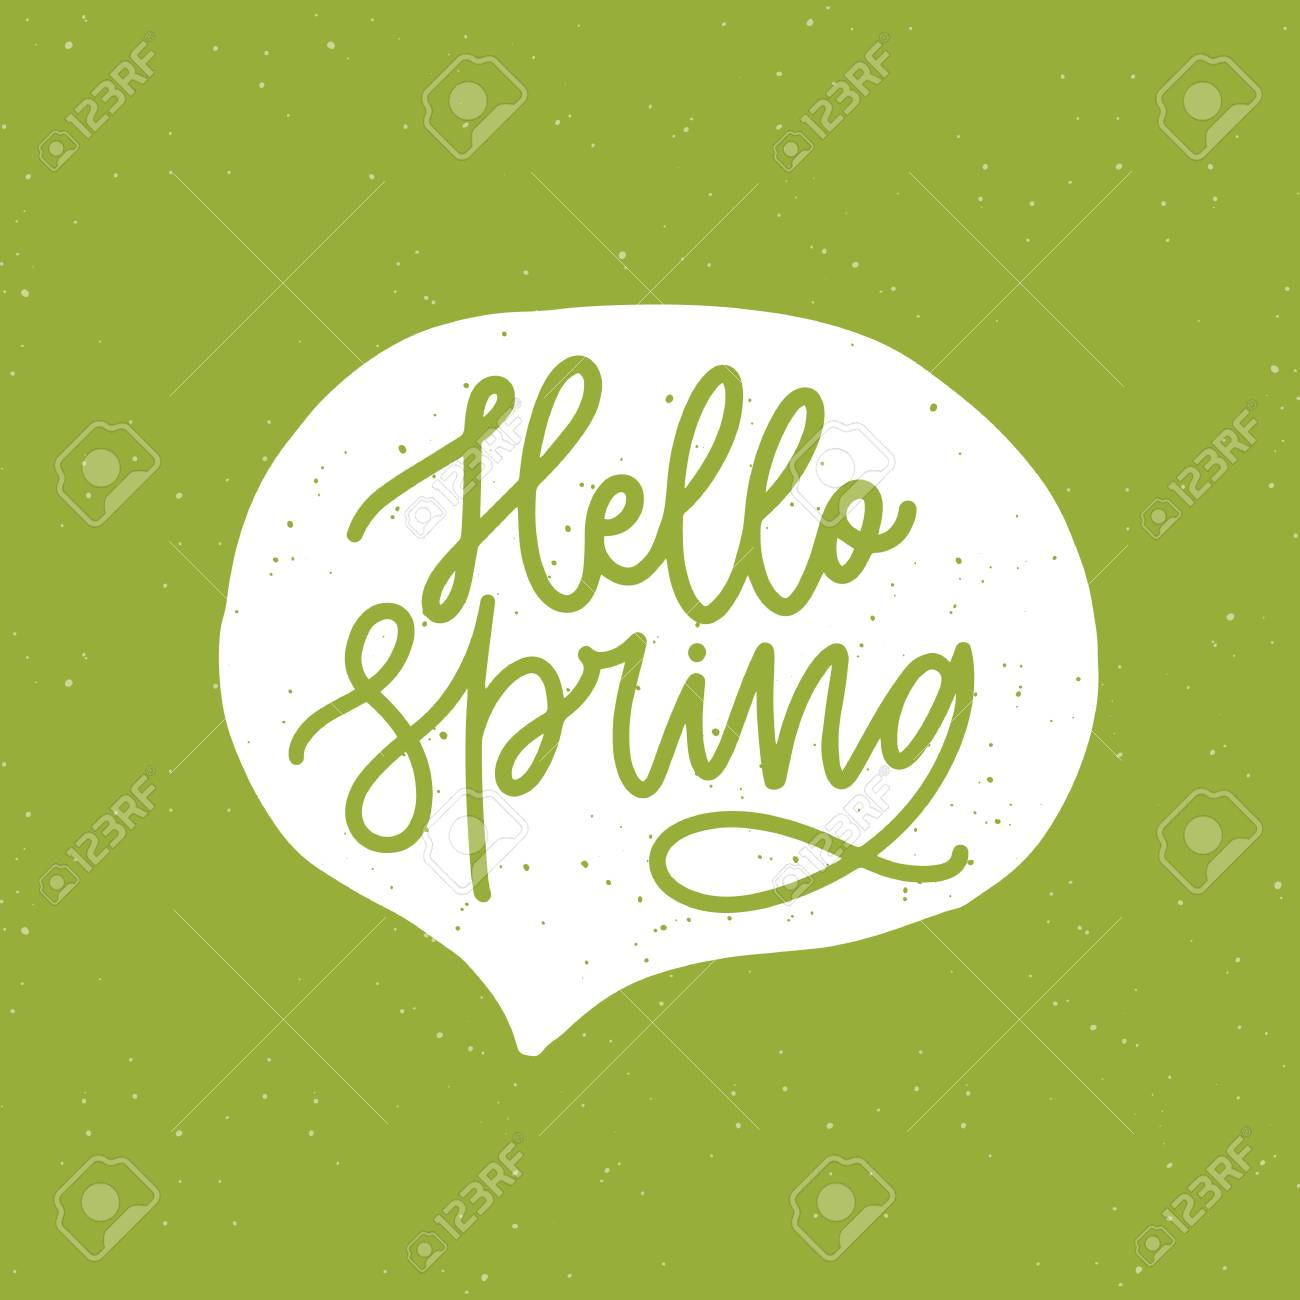 Hello Spring Phrase Handwritten With Elegant Cursive Font Or Script Inside Speech Balloon Bubble On